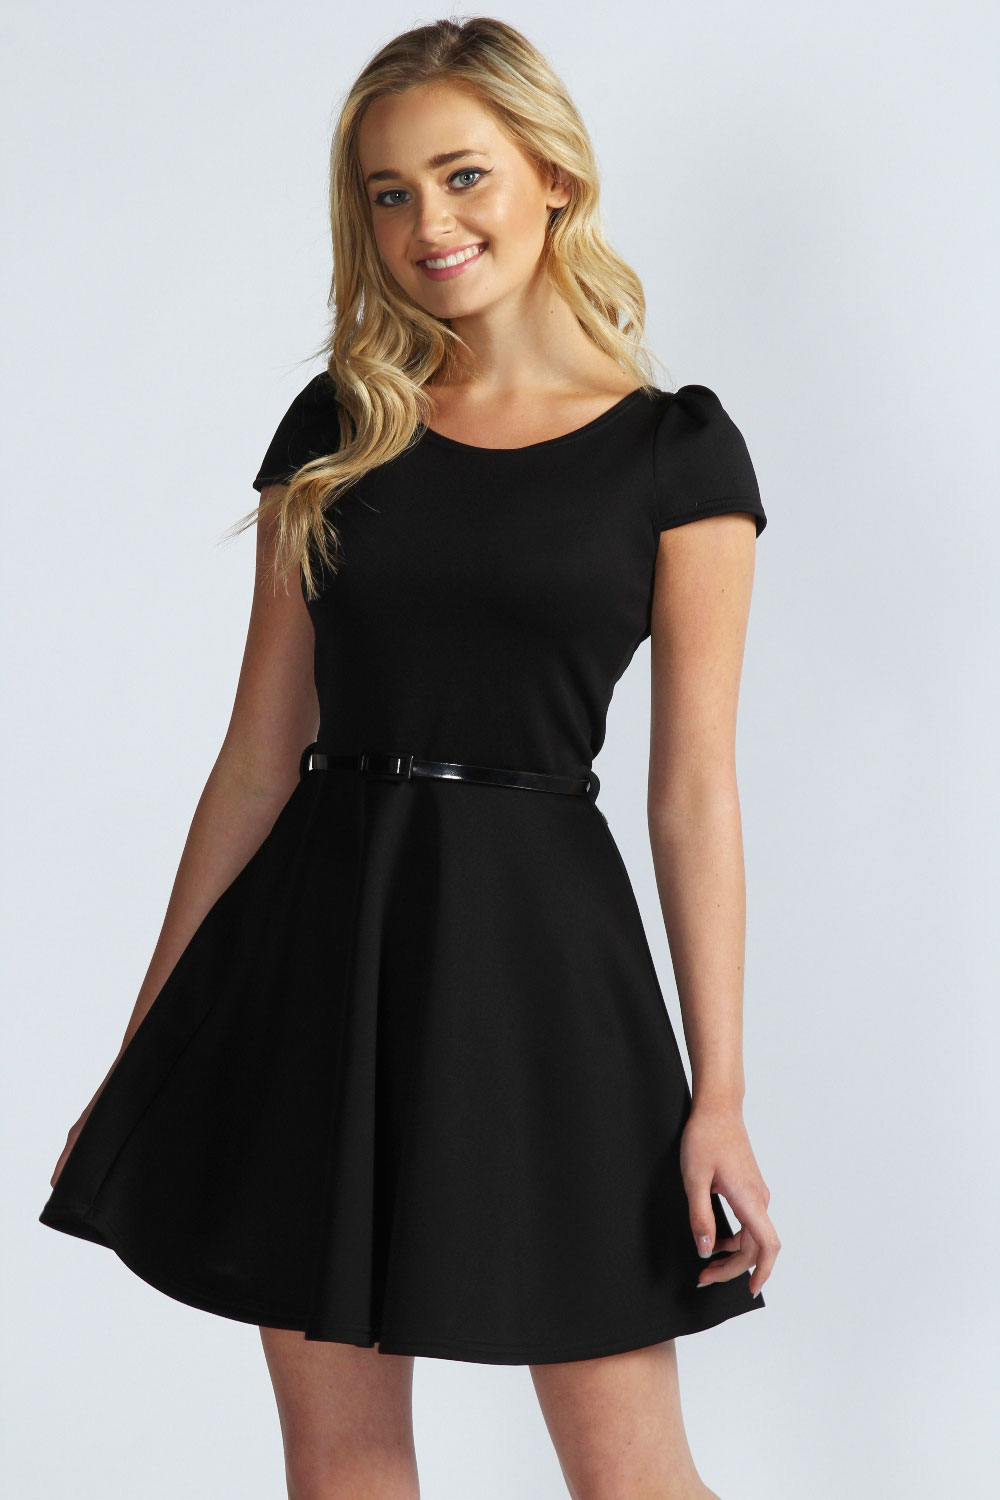 Boohoo Milly Cap Sleeve Belted Skater Dress | eBay